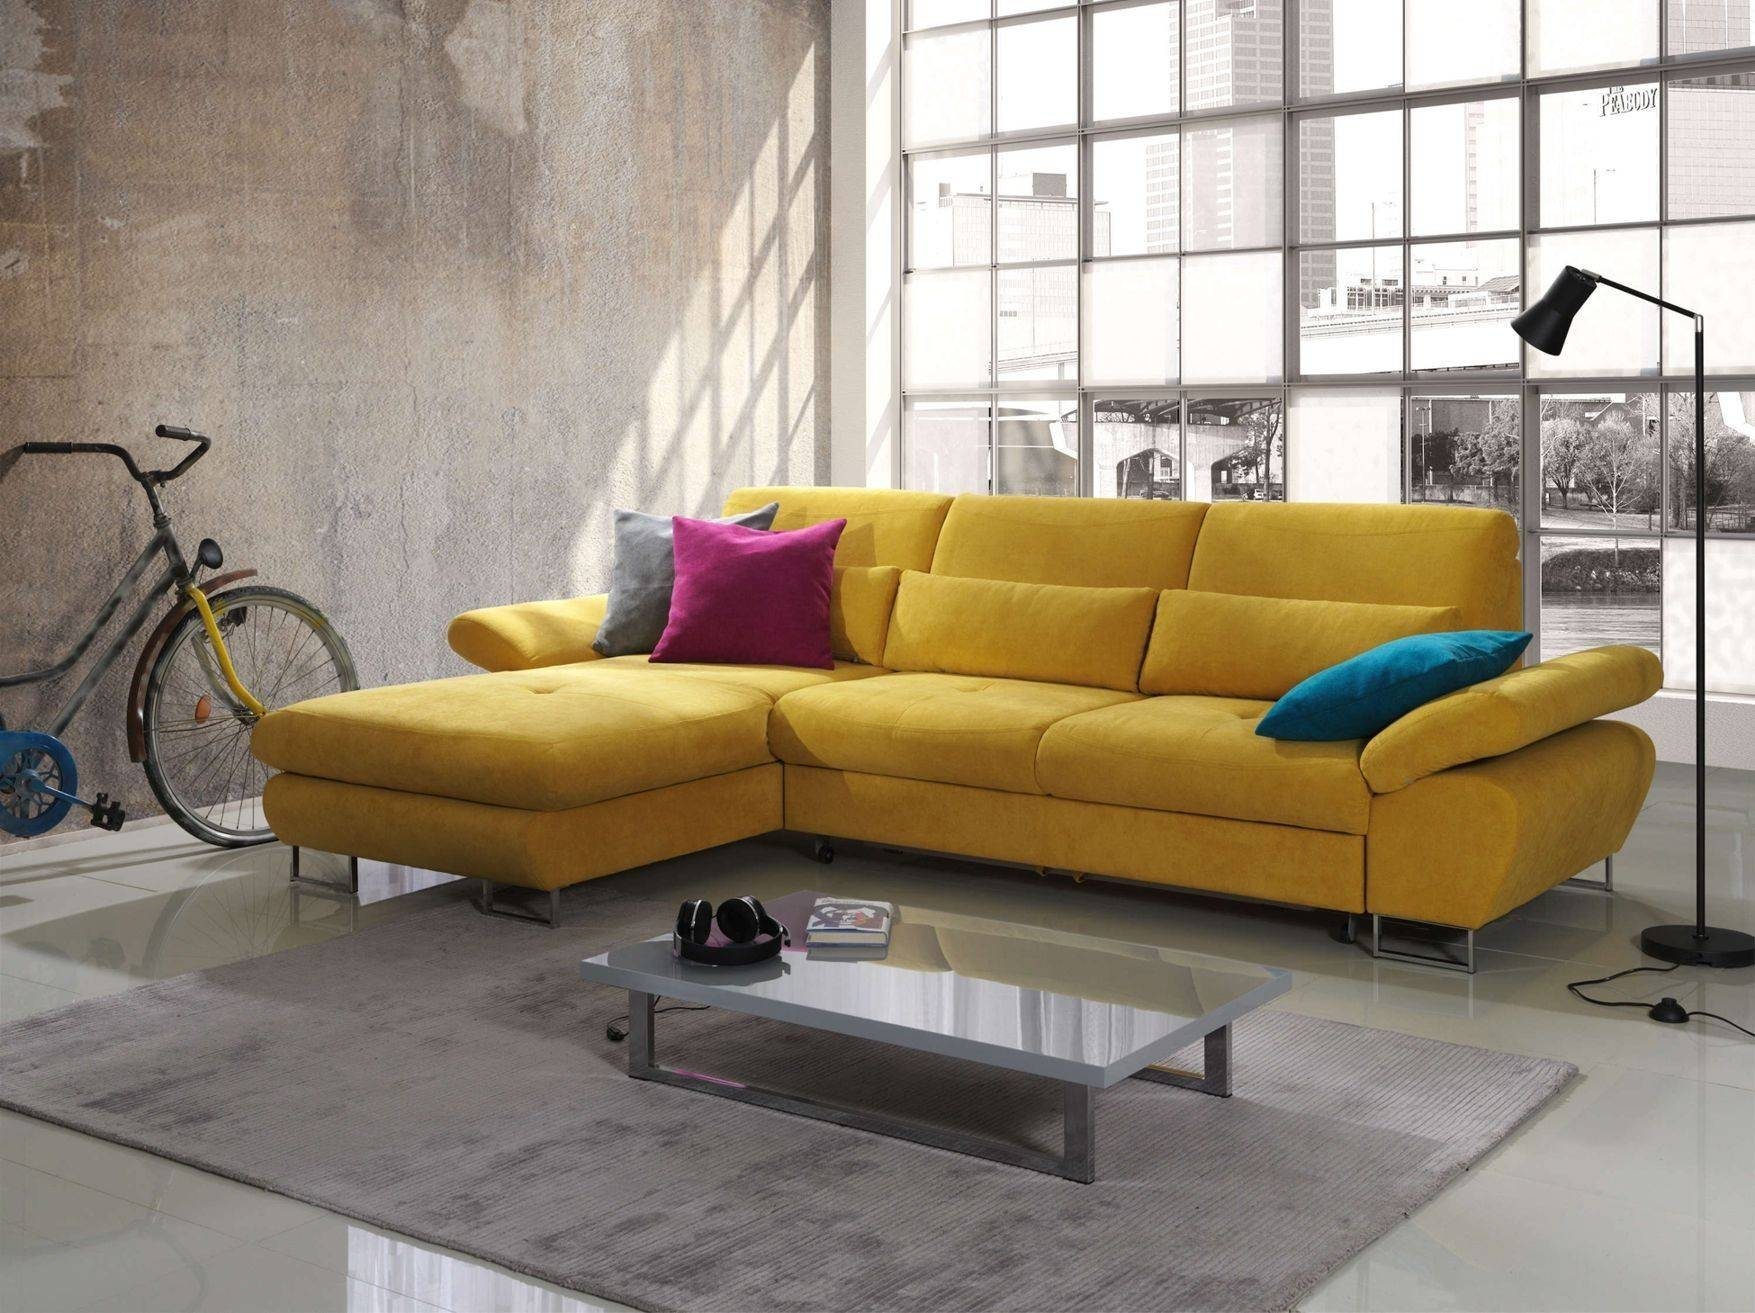 Awesome Best Apartment Sofa Home Ideas Design cerpa